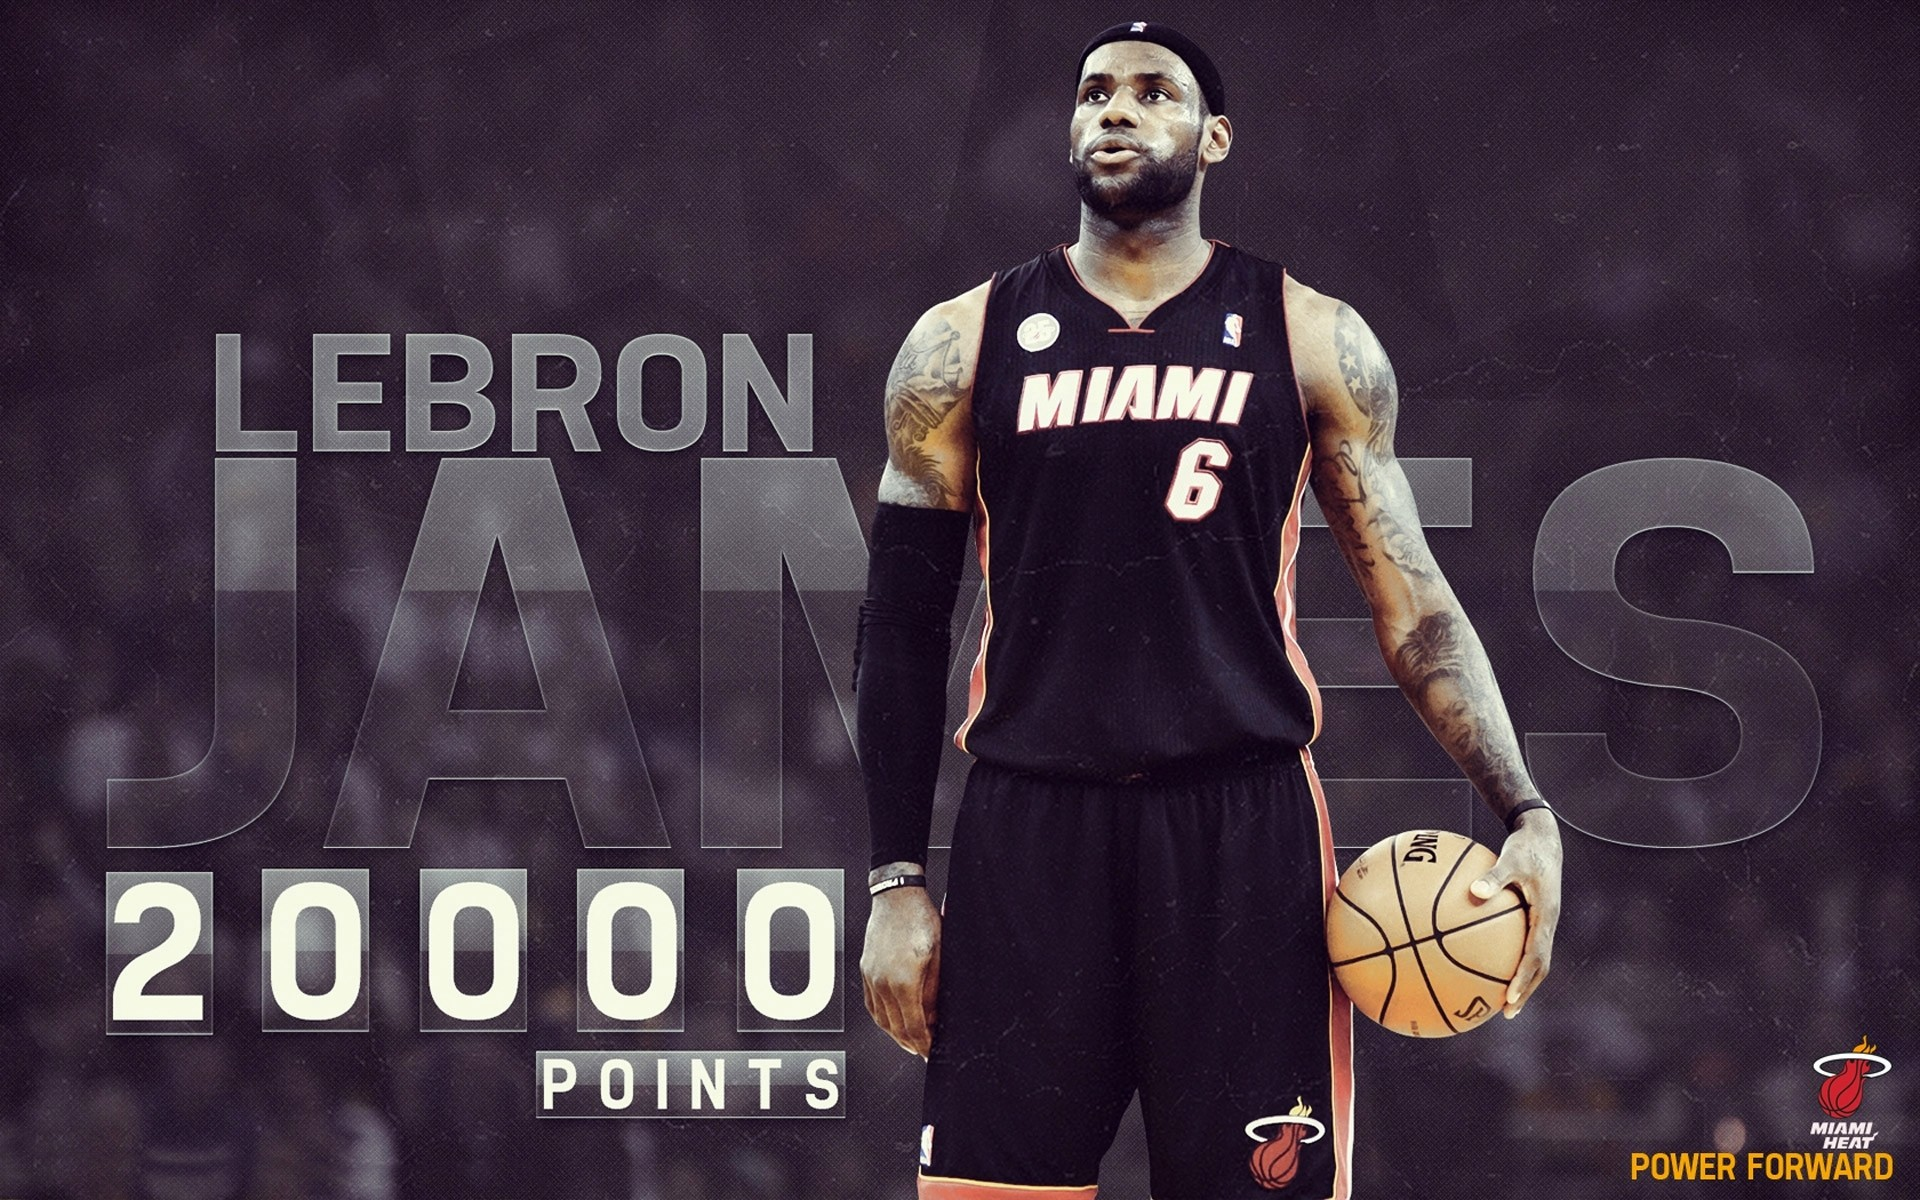 1920x1200 LeBron James NBA Basketball Player Sports Miami Heat Ball Tattoos wallpaper  |  | 119728 | WallpaperUP